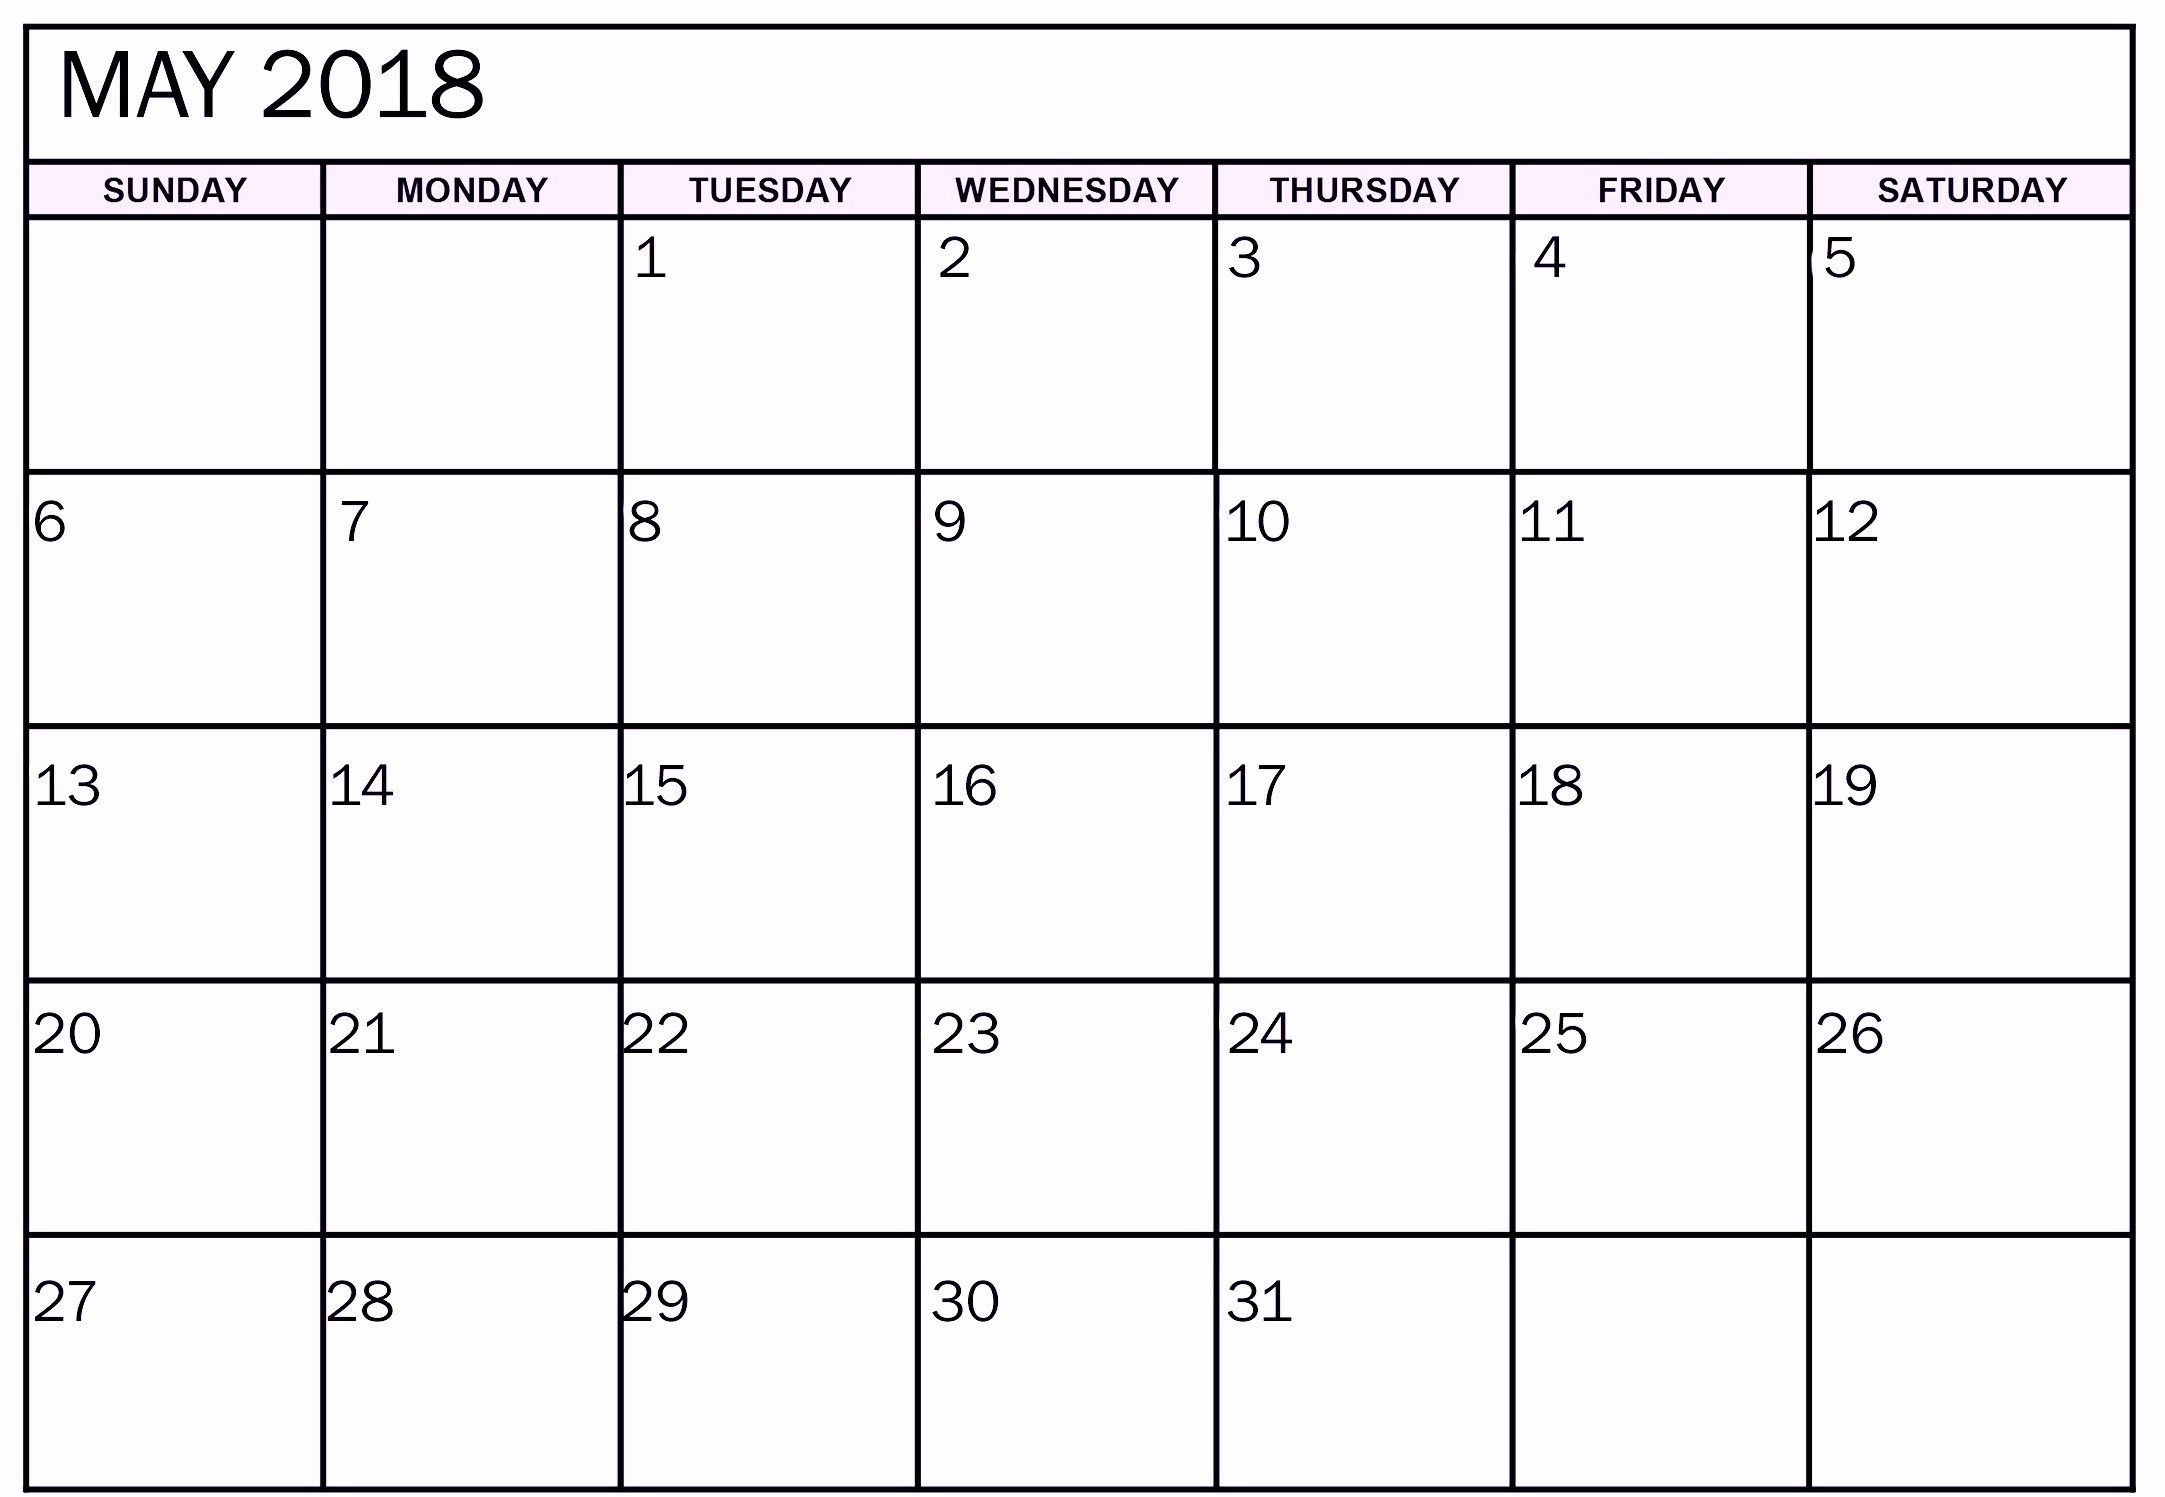 Free 2018 Monthly Calendar Template Best Of May 2018 Monthly Calendar Printable